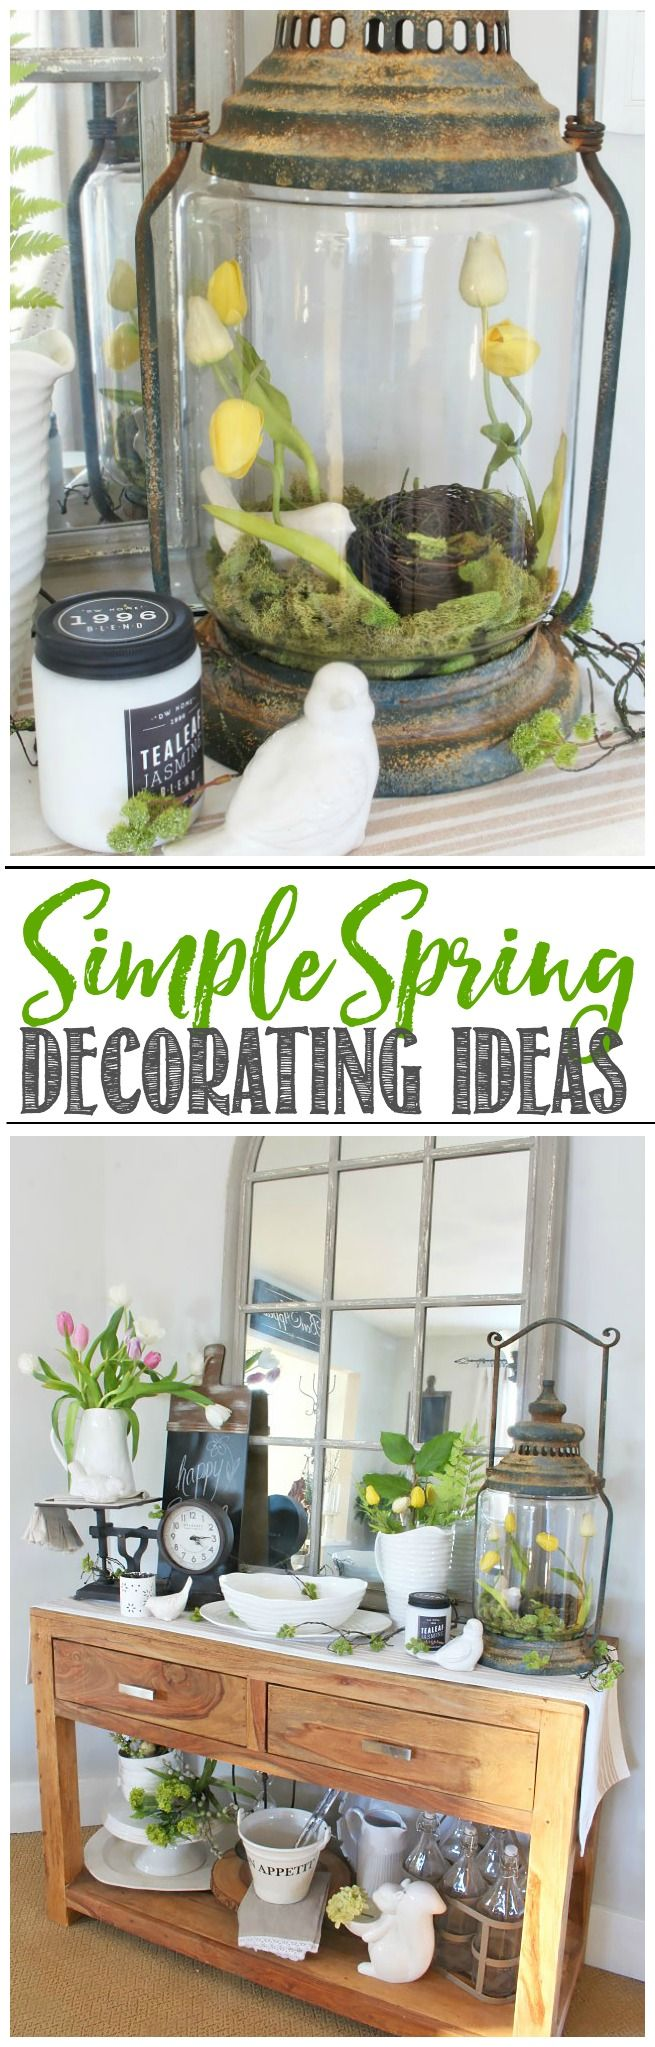 Quick and Easy Spring Decorating Ideas | Farmhouse style ...